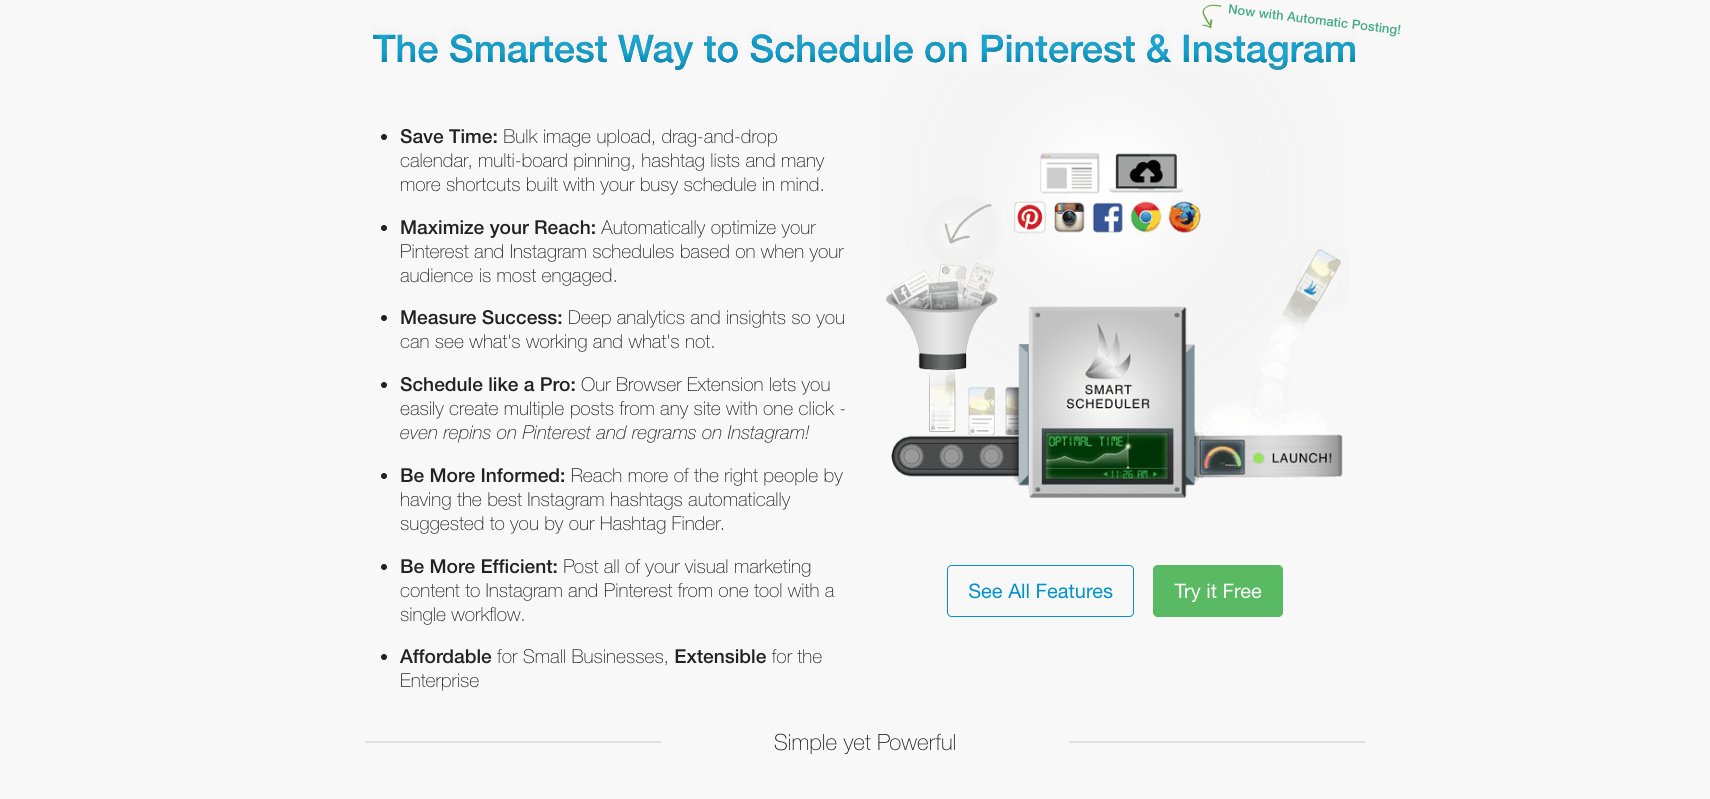 Image showing details about Tailwind, an excellent e-commerce marketing tool for Instagram and Pinterest.